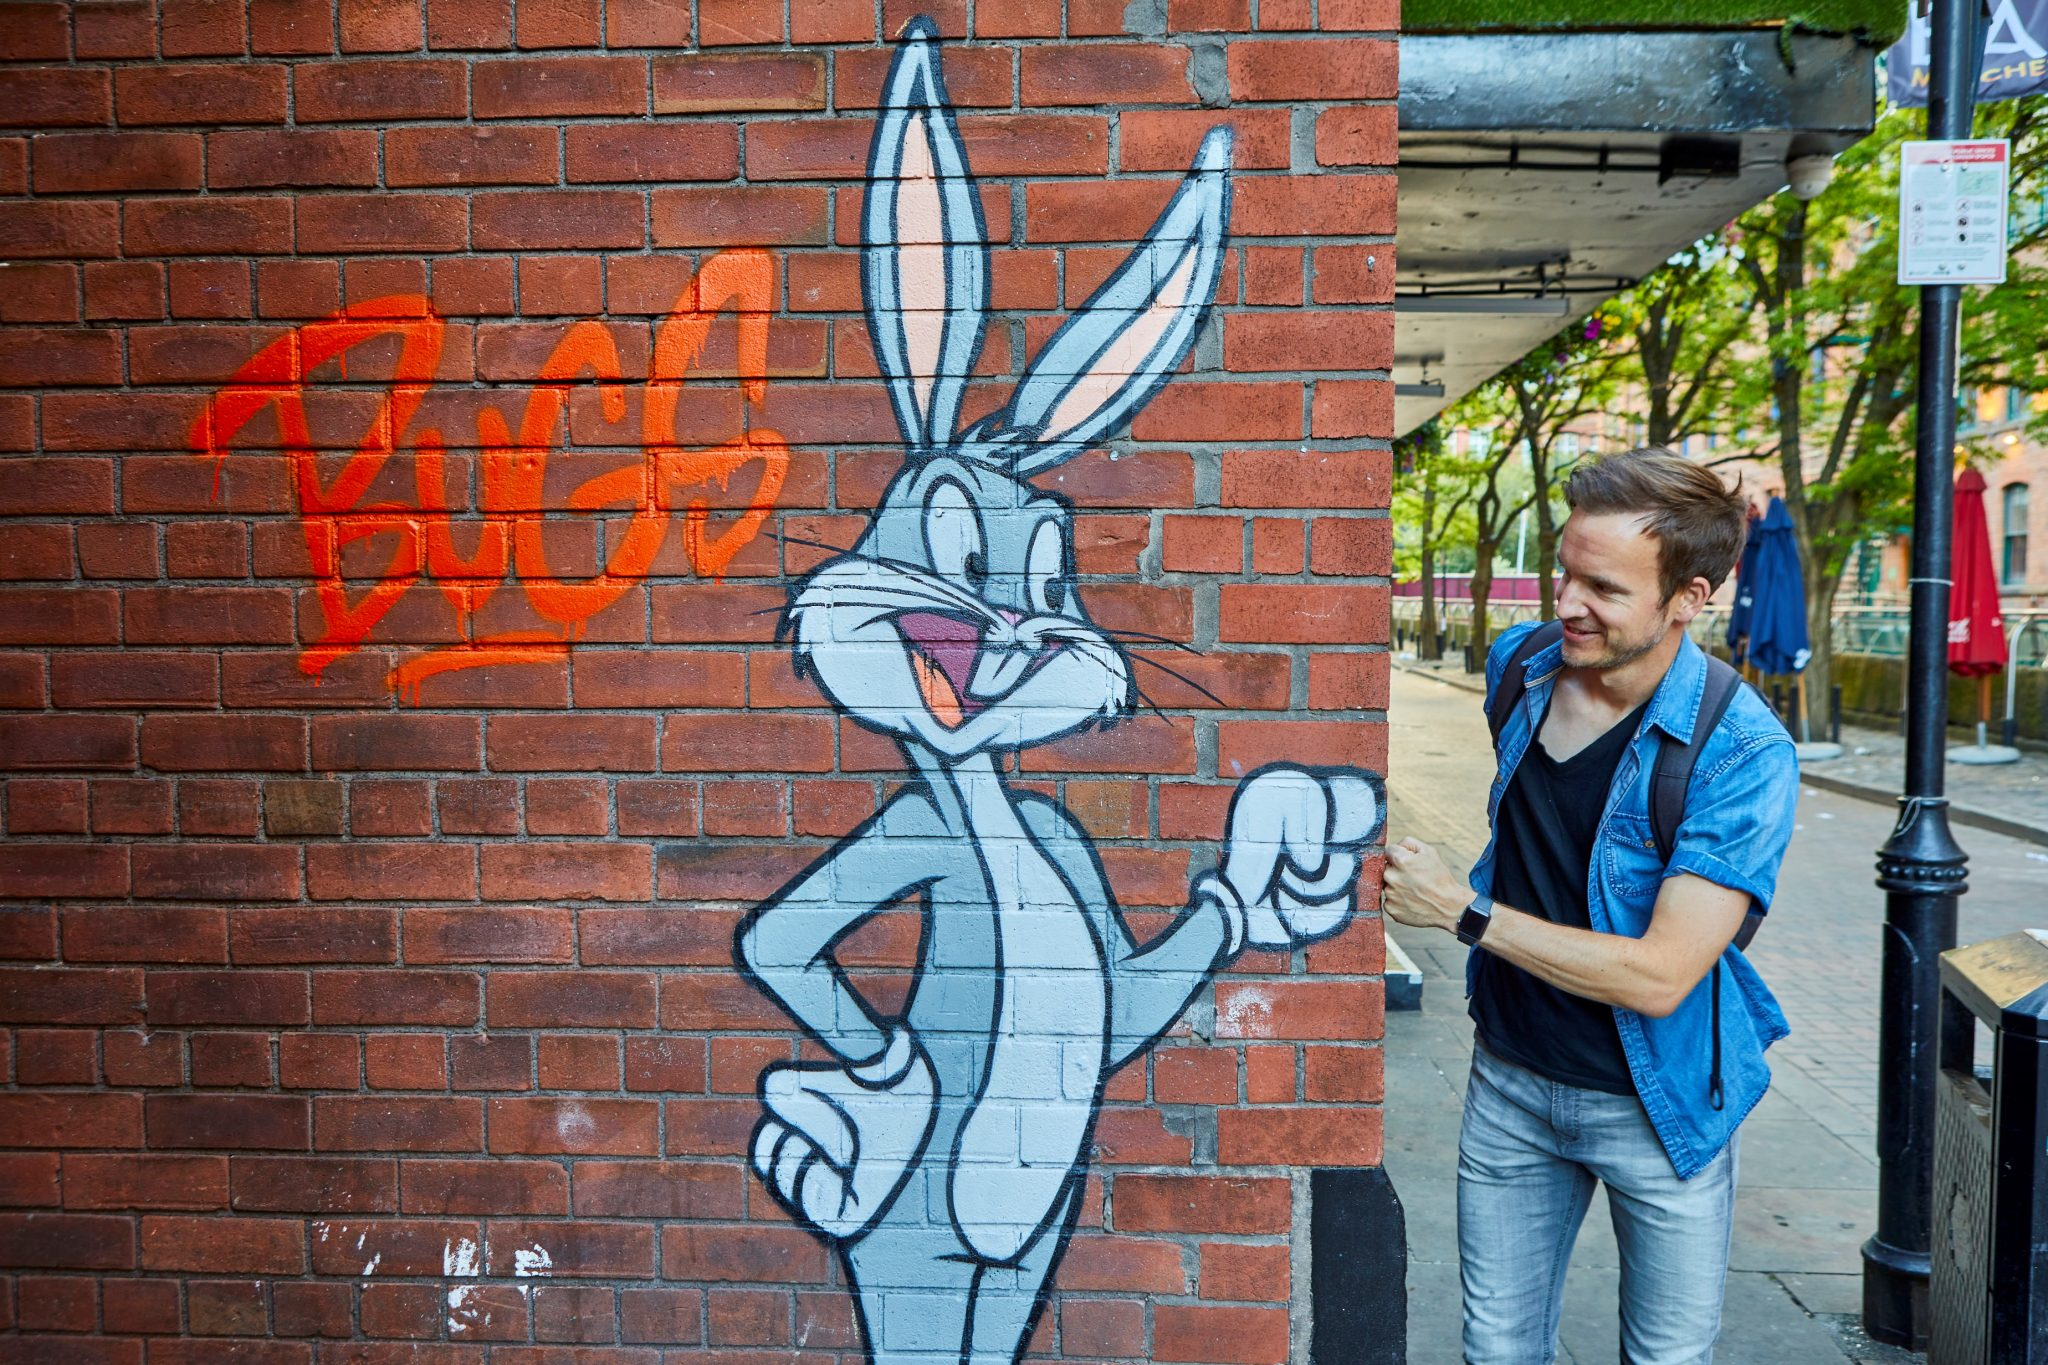 whats on for kids manchester, looney tunes trail manchester, free events manchester